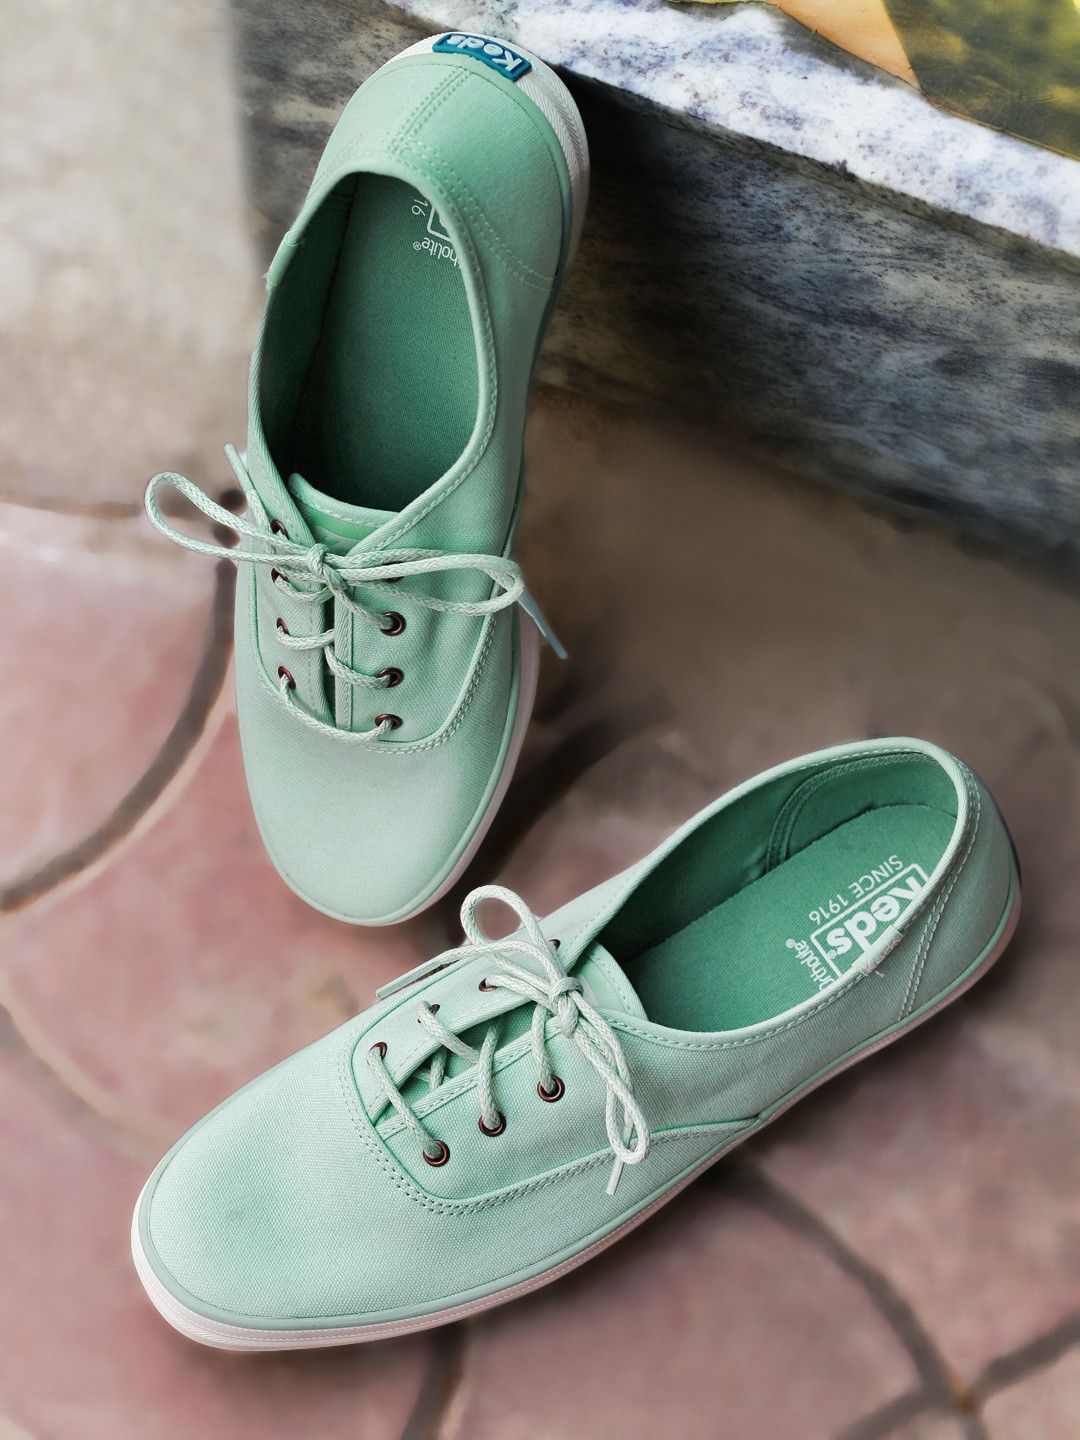 keds green sneakers Shop Clothing